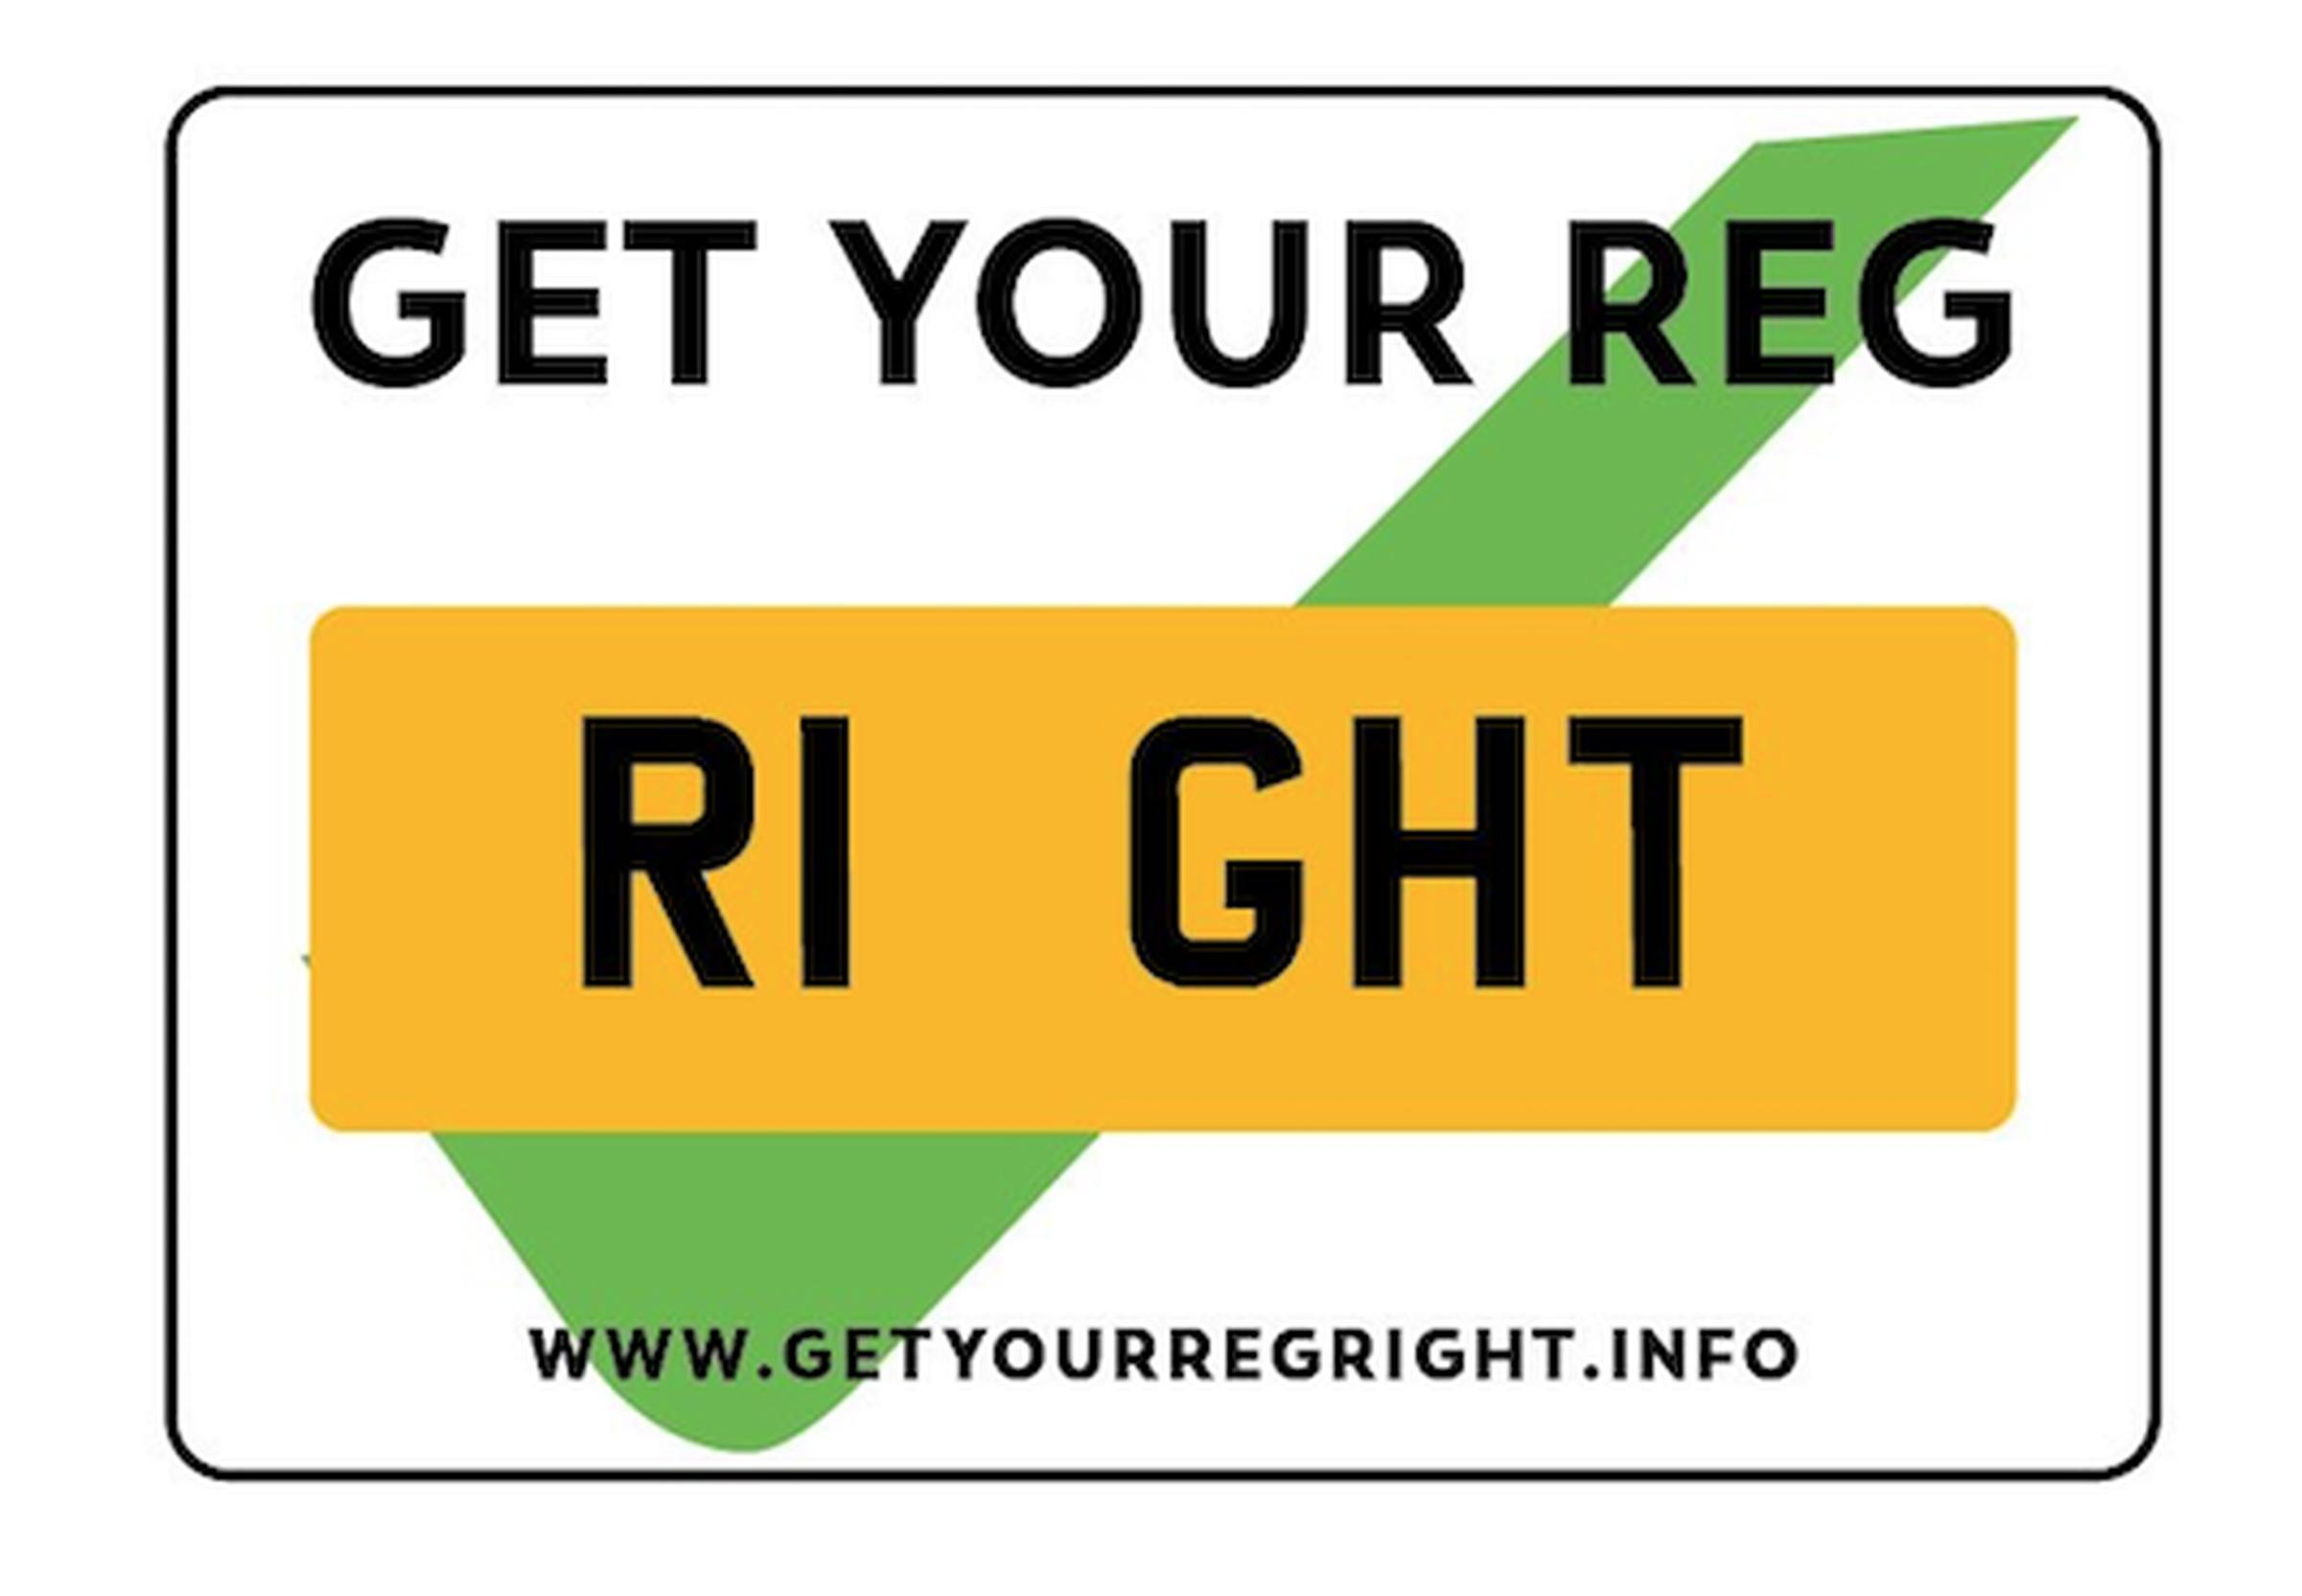 The 'Get Your Reg Right' logo